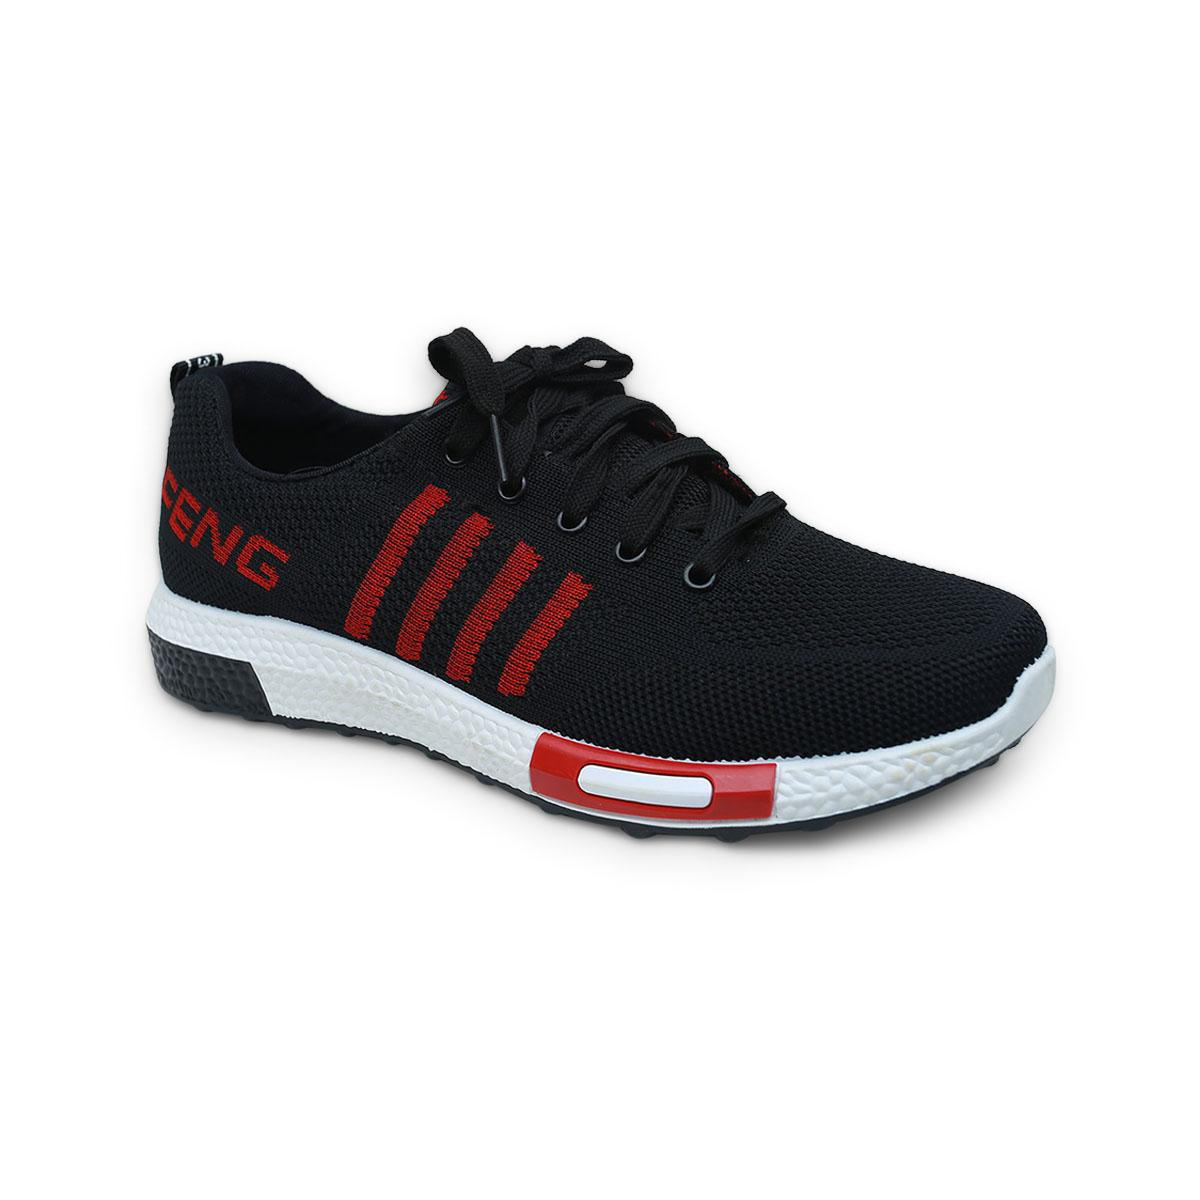 e26e5ac8e104 Sneakers - Buy Sneakers at Best Price in Bangladesh